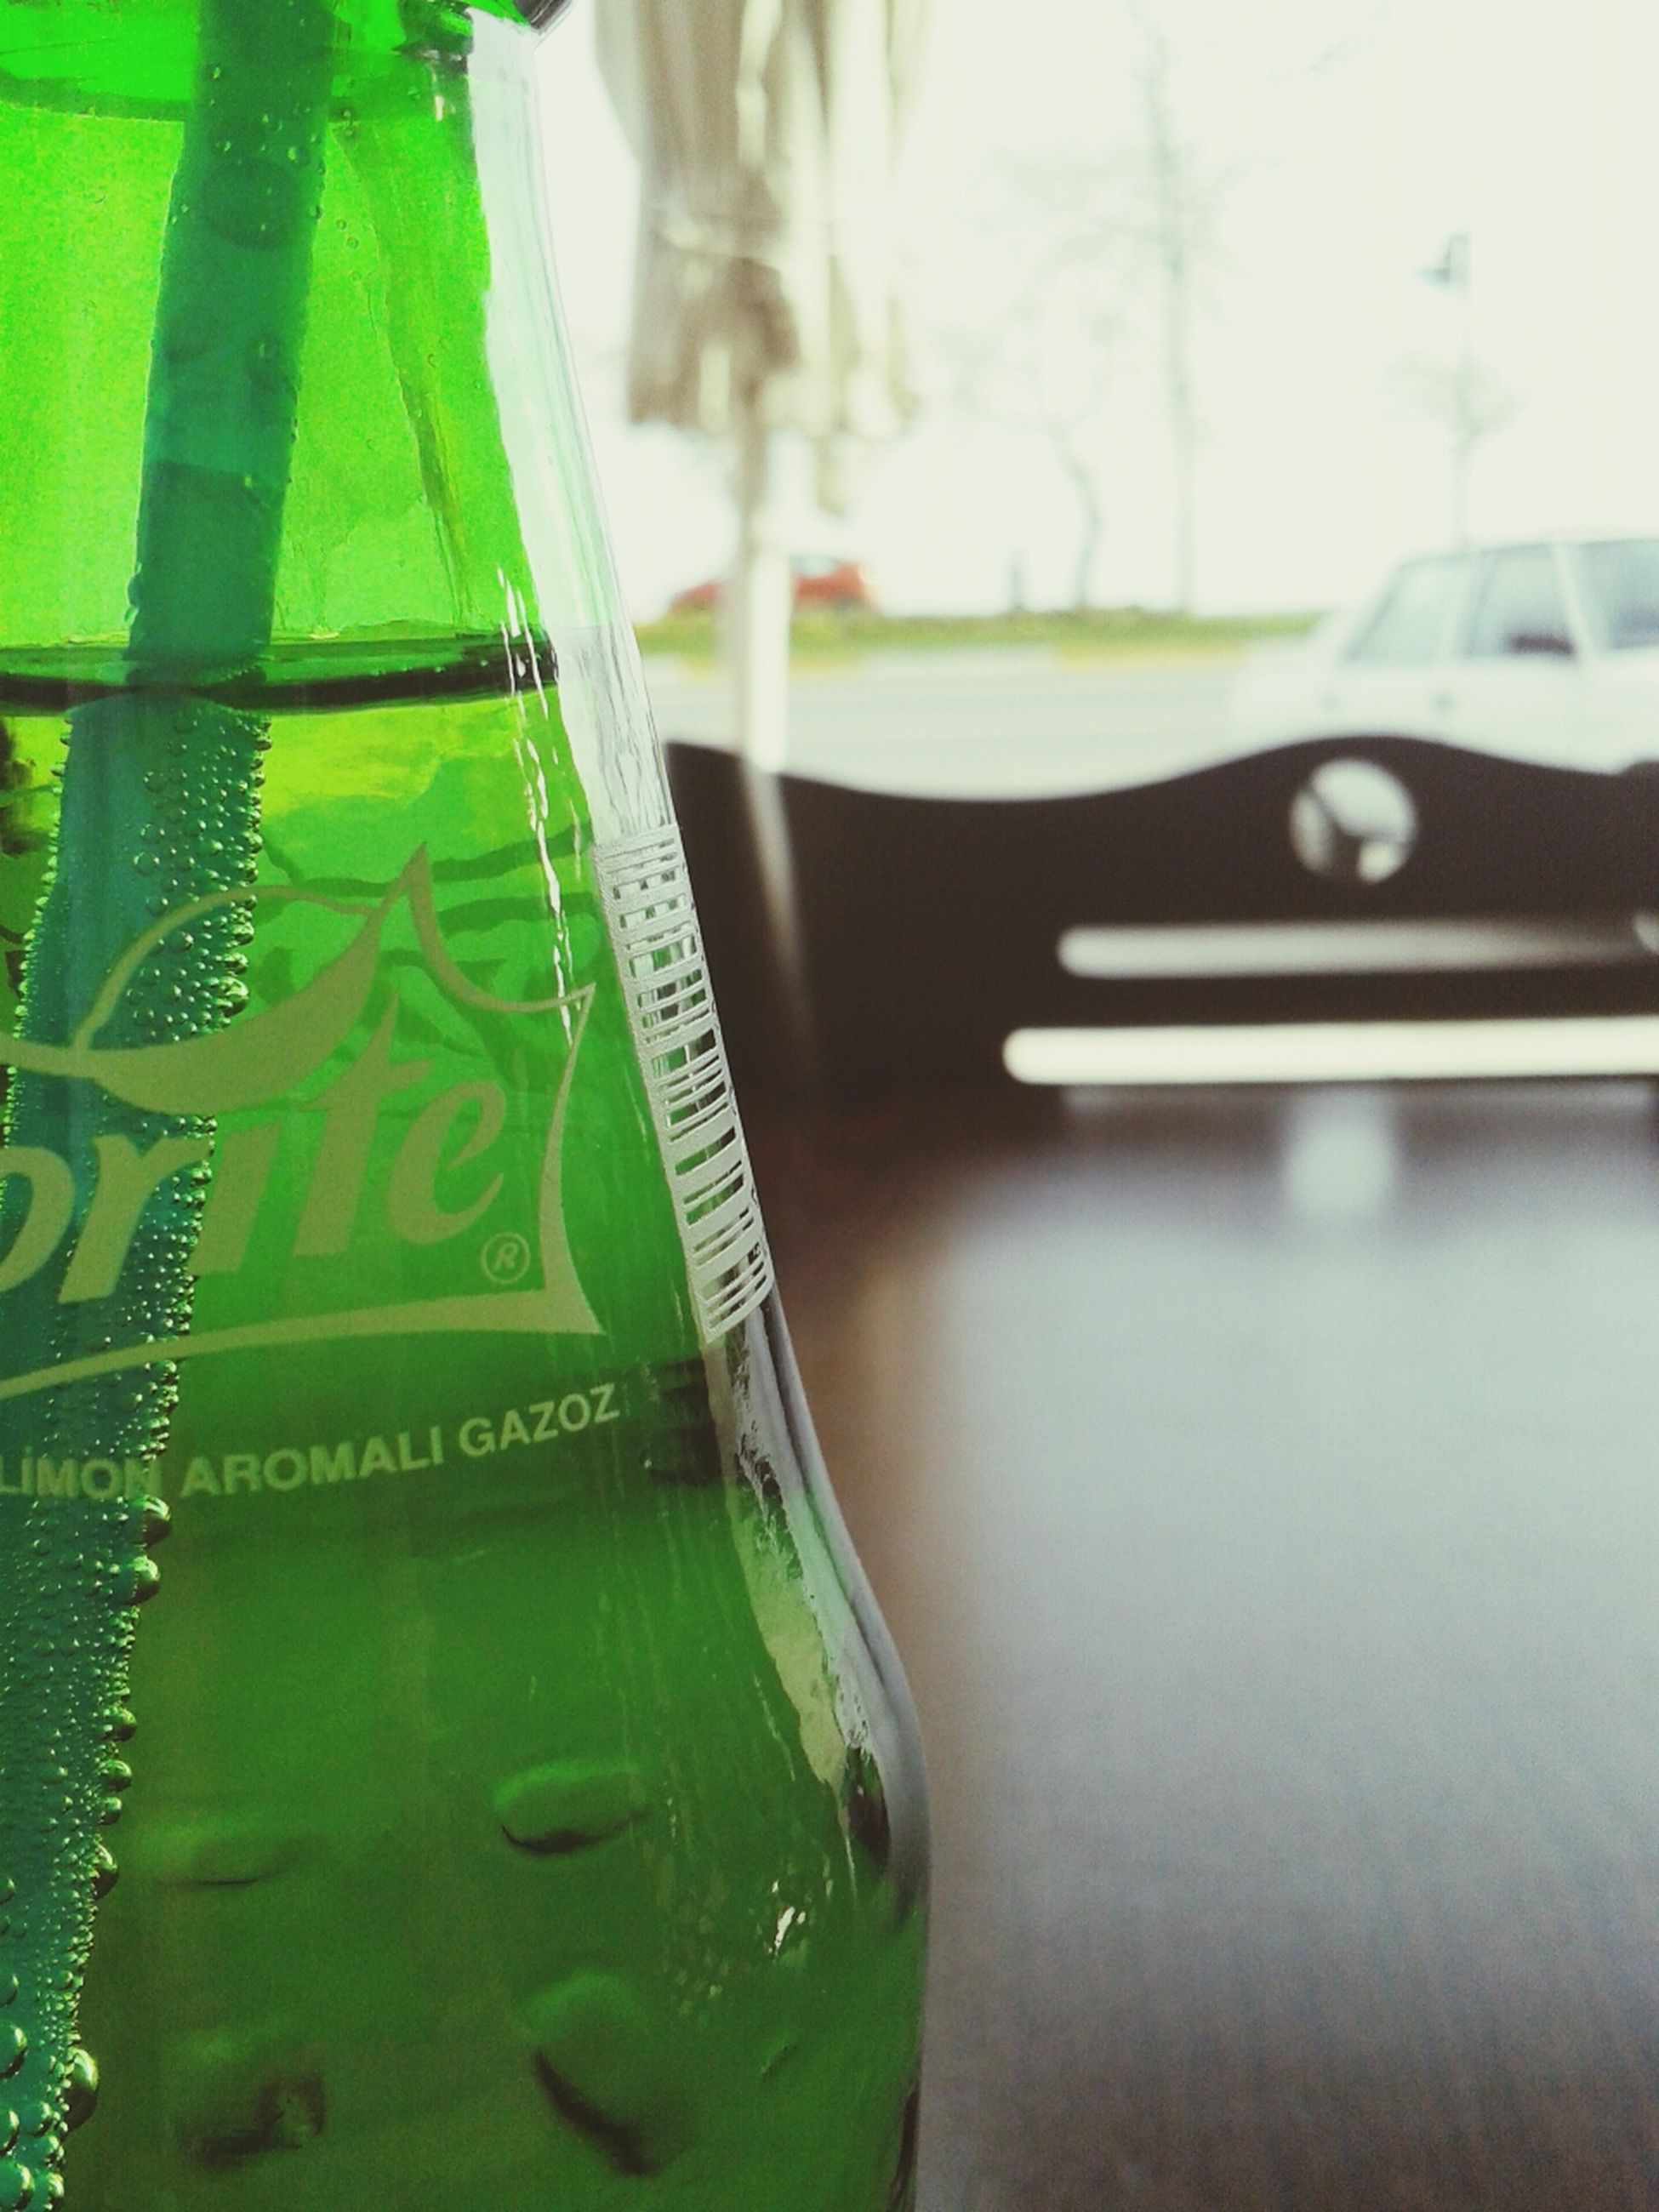 focus on foreground, close-up, transportation, reflection, water, green color, mode of transport, selective focus, car, table, day, indoors, part of, street, land vehicle, glass - material, incidental people, wet, cropped, transparent